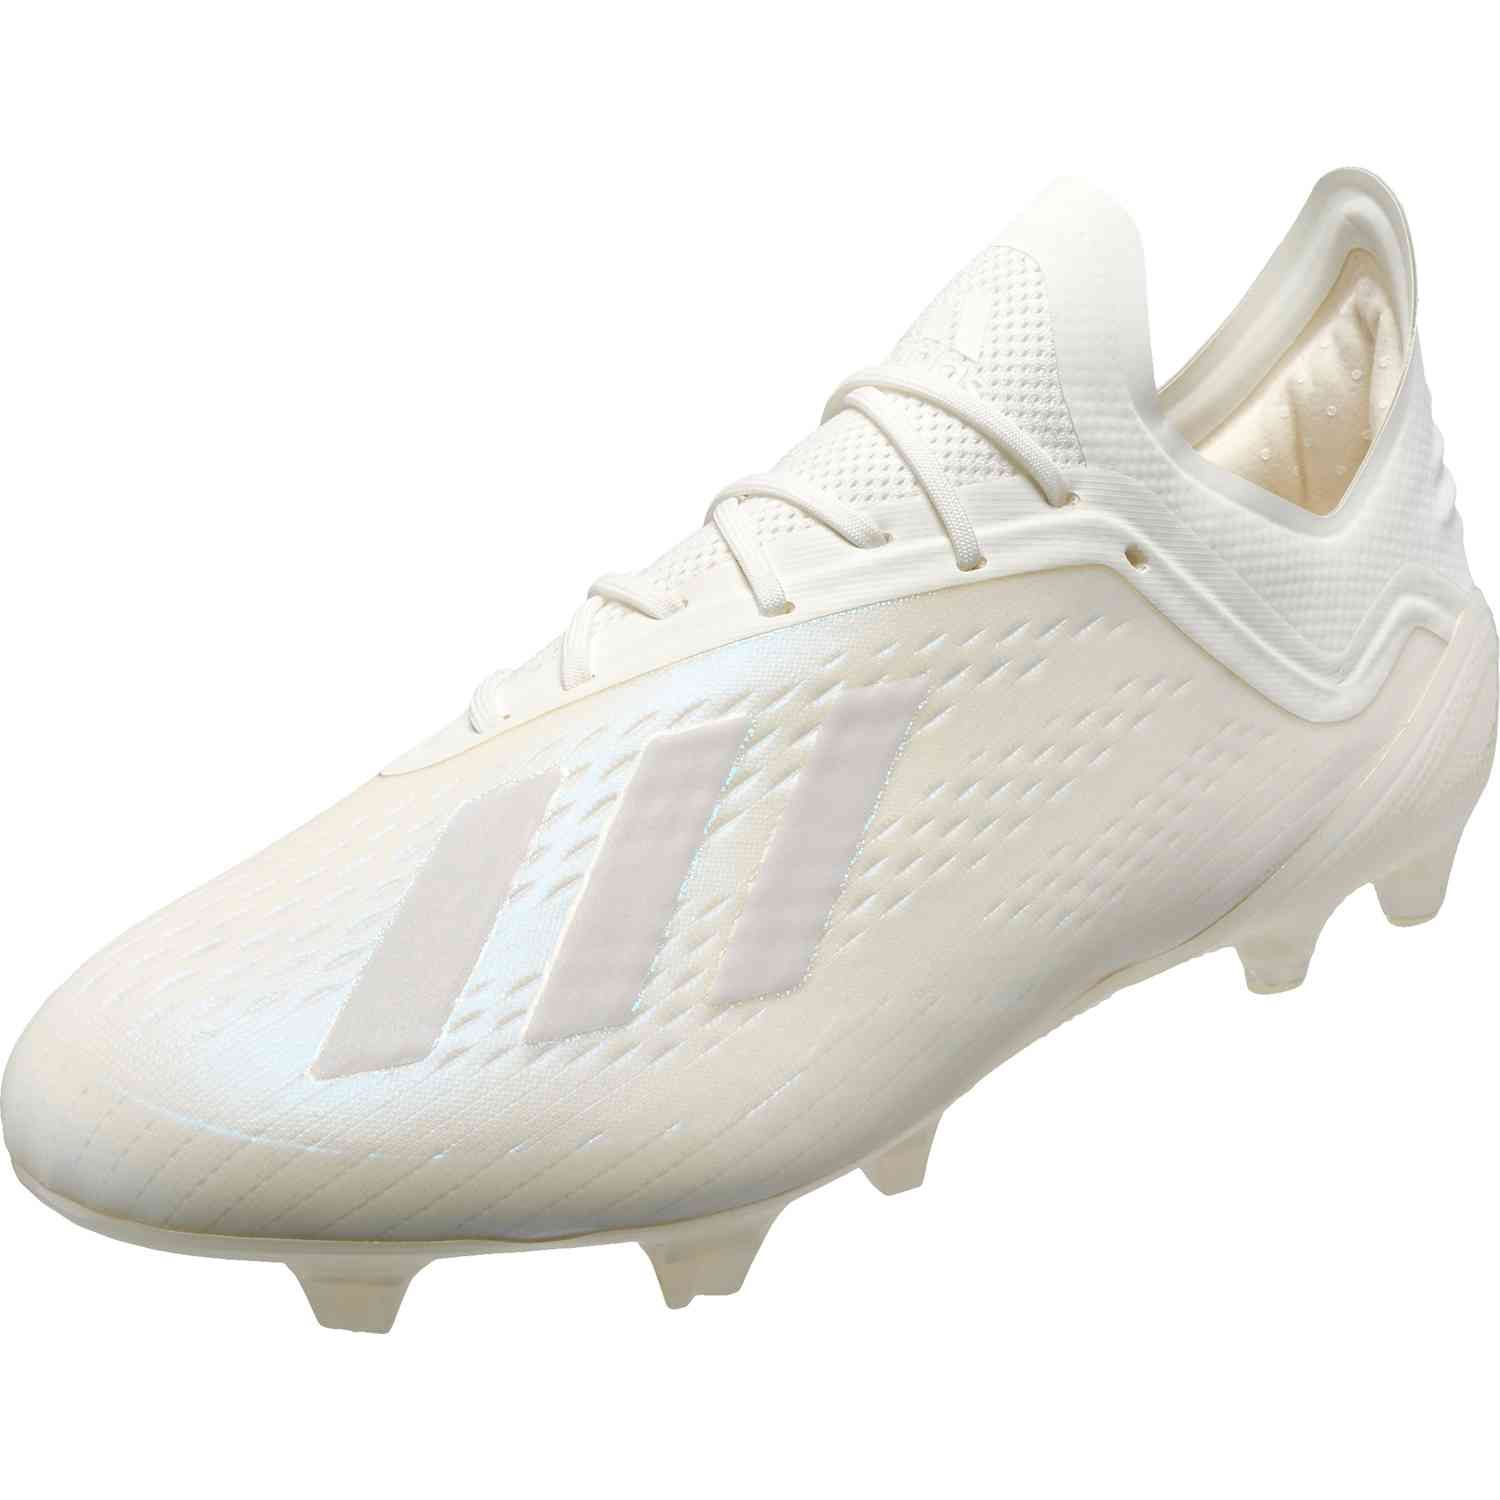 Spectral Mode pack adidas X 18.1 Flying off the shelves at SoccerPro now. a109fbc7ea3